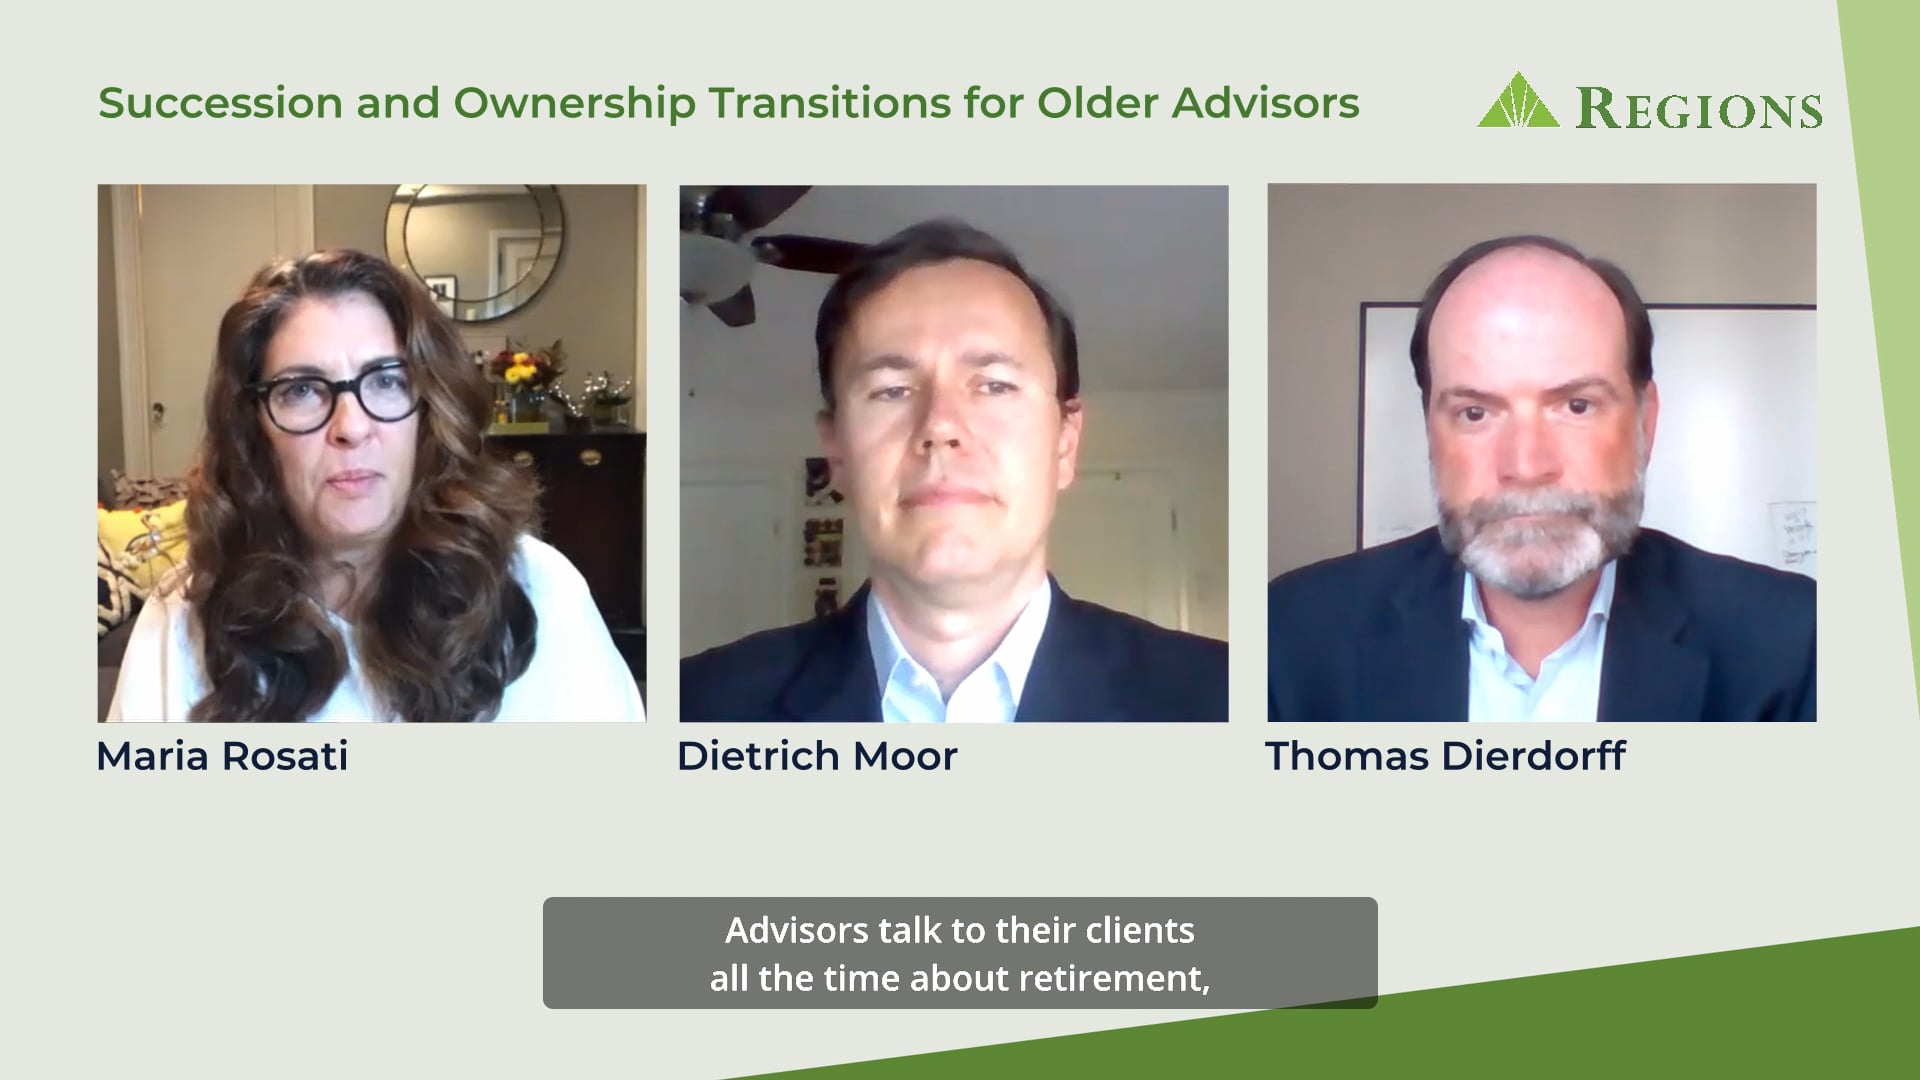 Regions - Succession and Ownership Transitions for Older Advisors